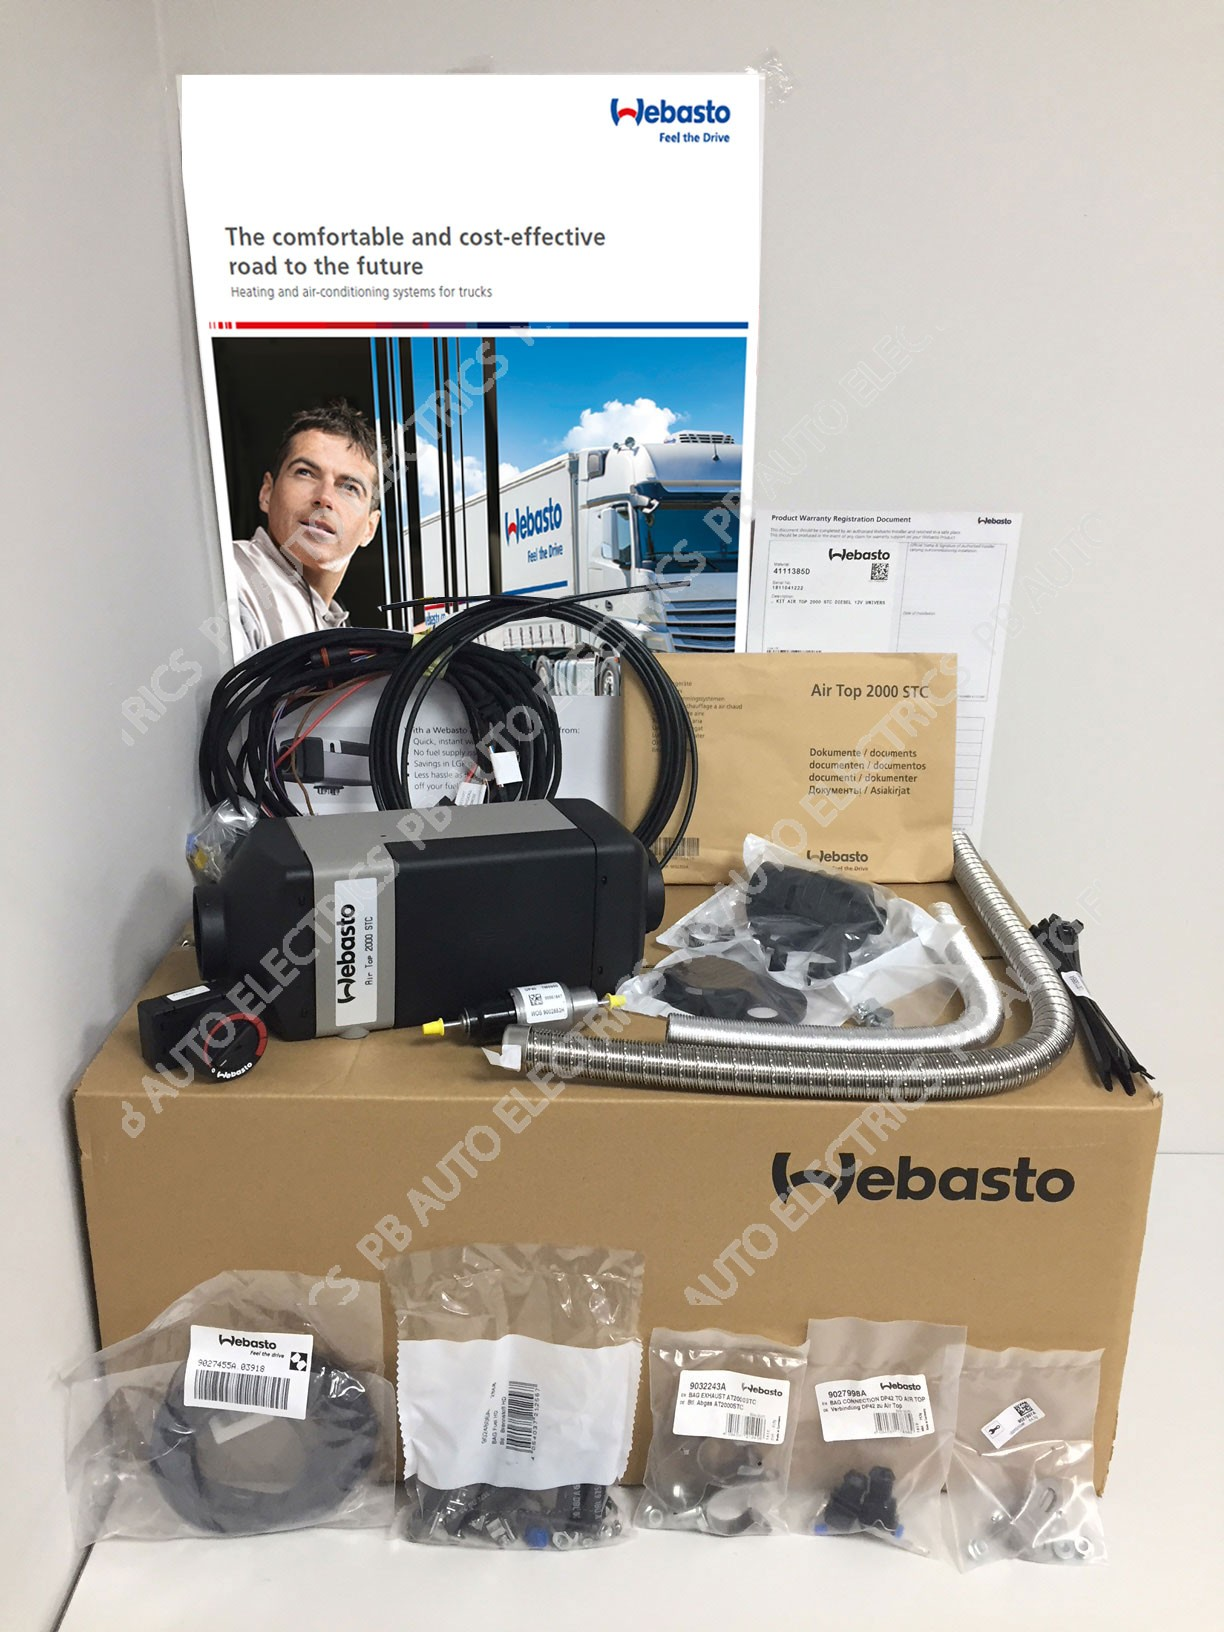 Webasto Air Top 2000 STC 24v Universal Heater Kit Diesel Rotary Control & 1 Outlet Ducting Kit - 4111386B/1